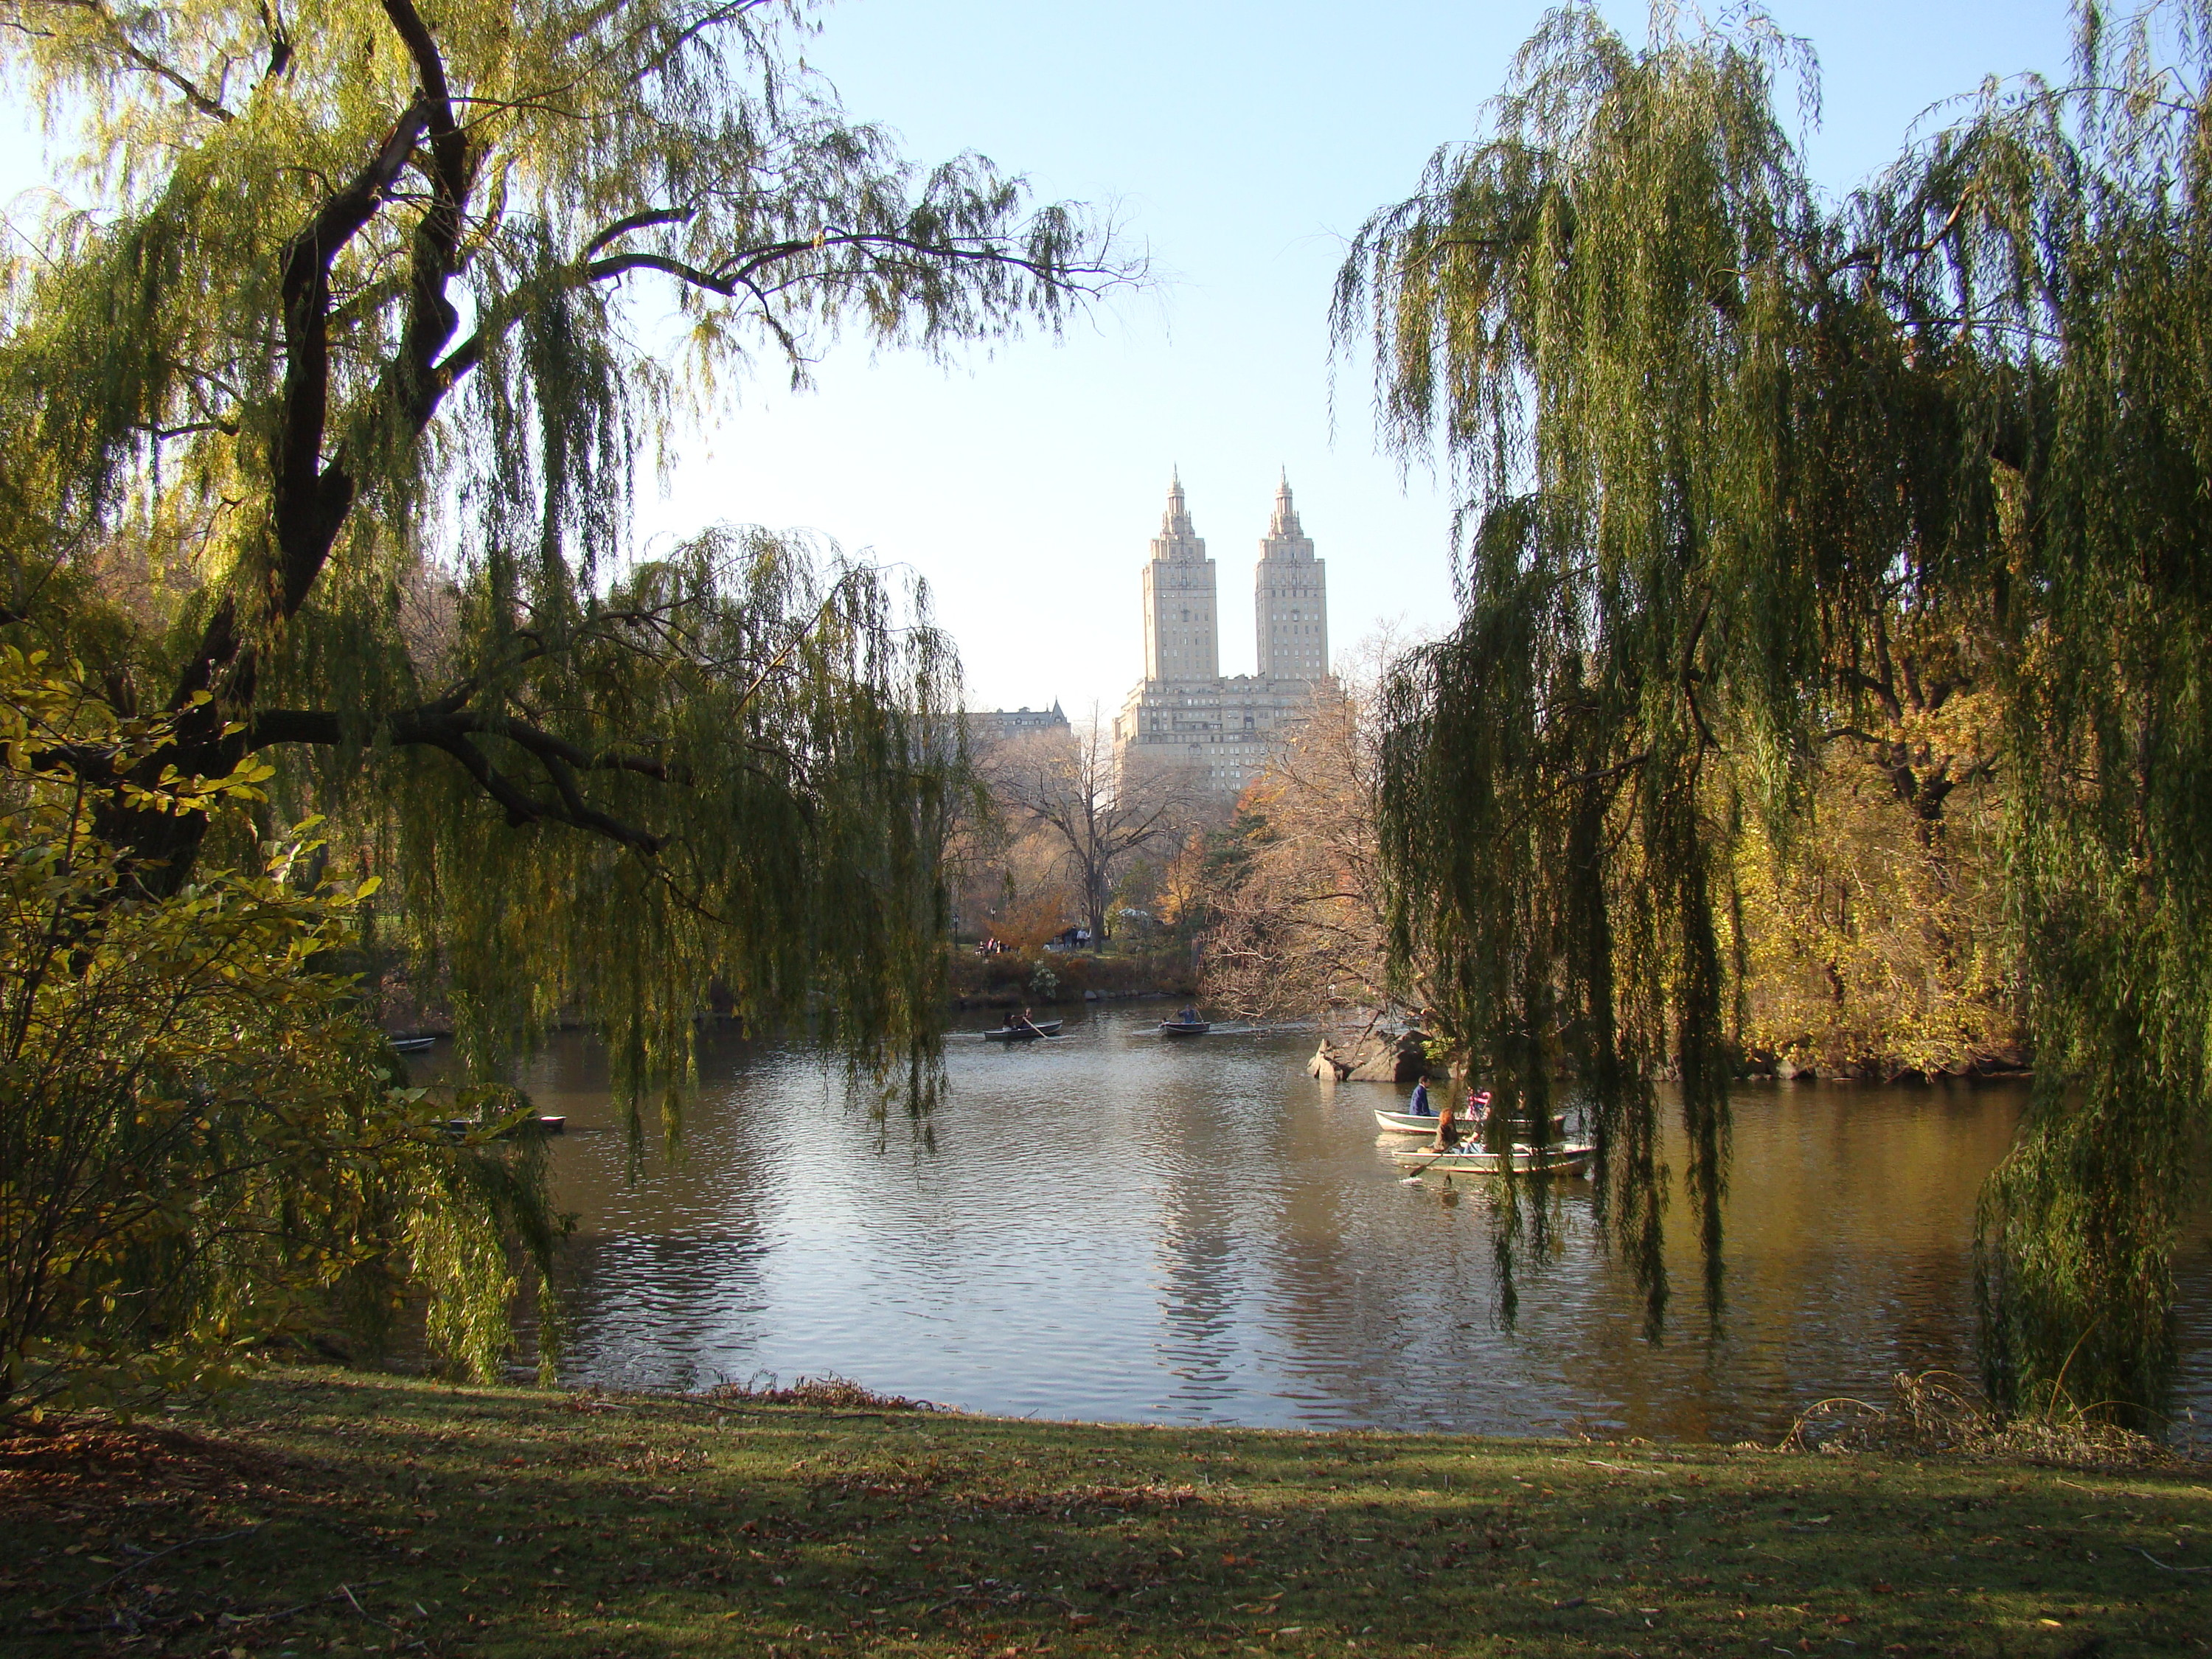 Hunt for wild black cherries in Central Park this weekend